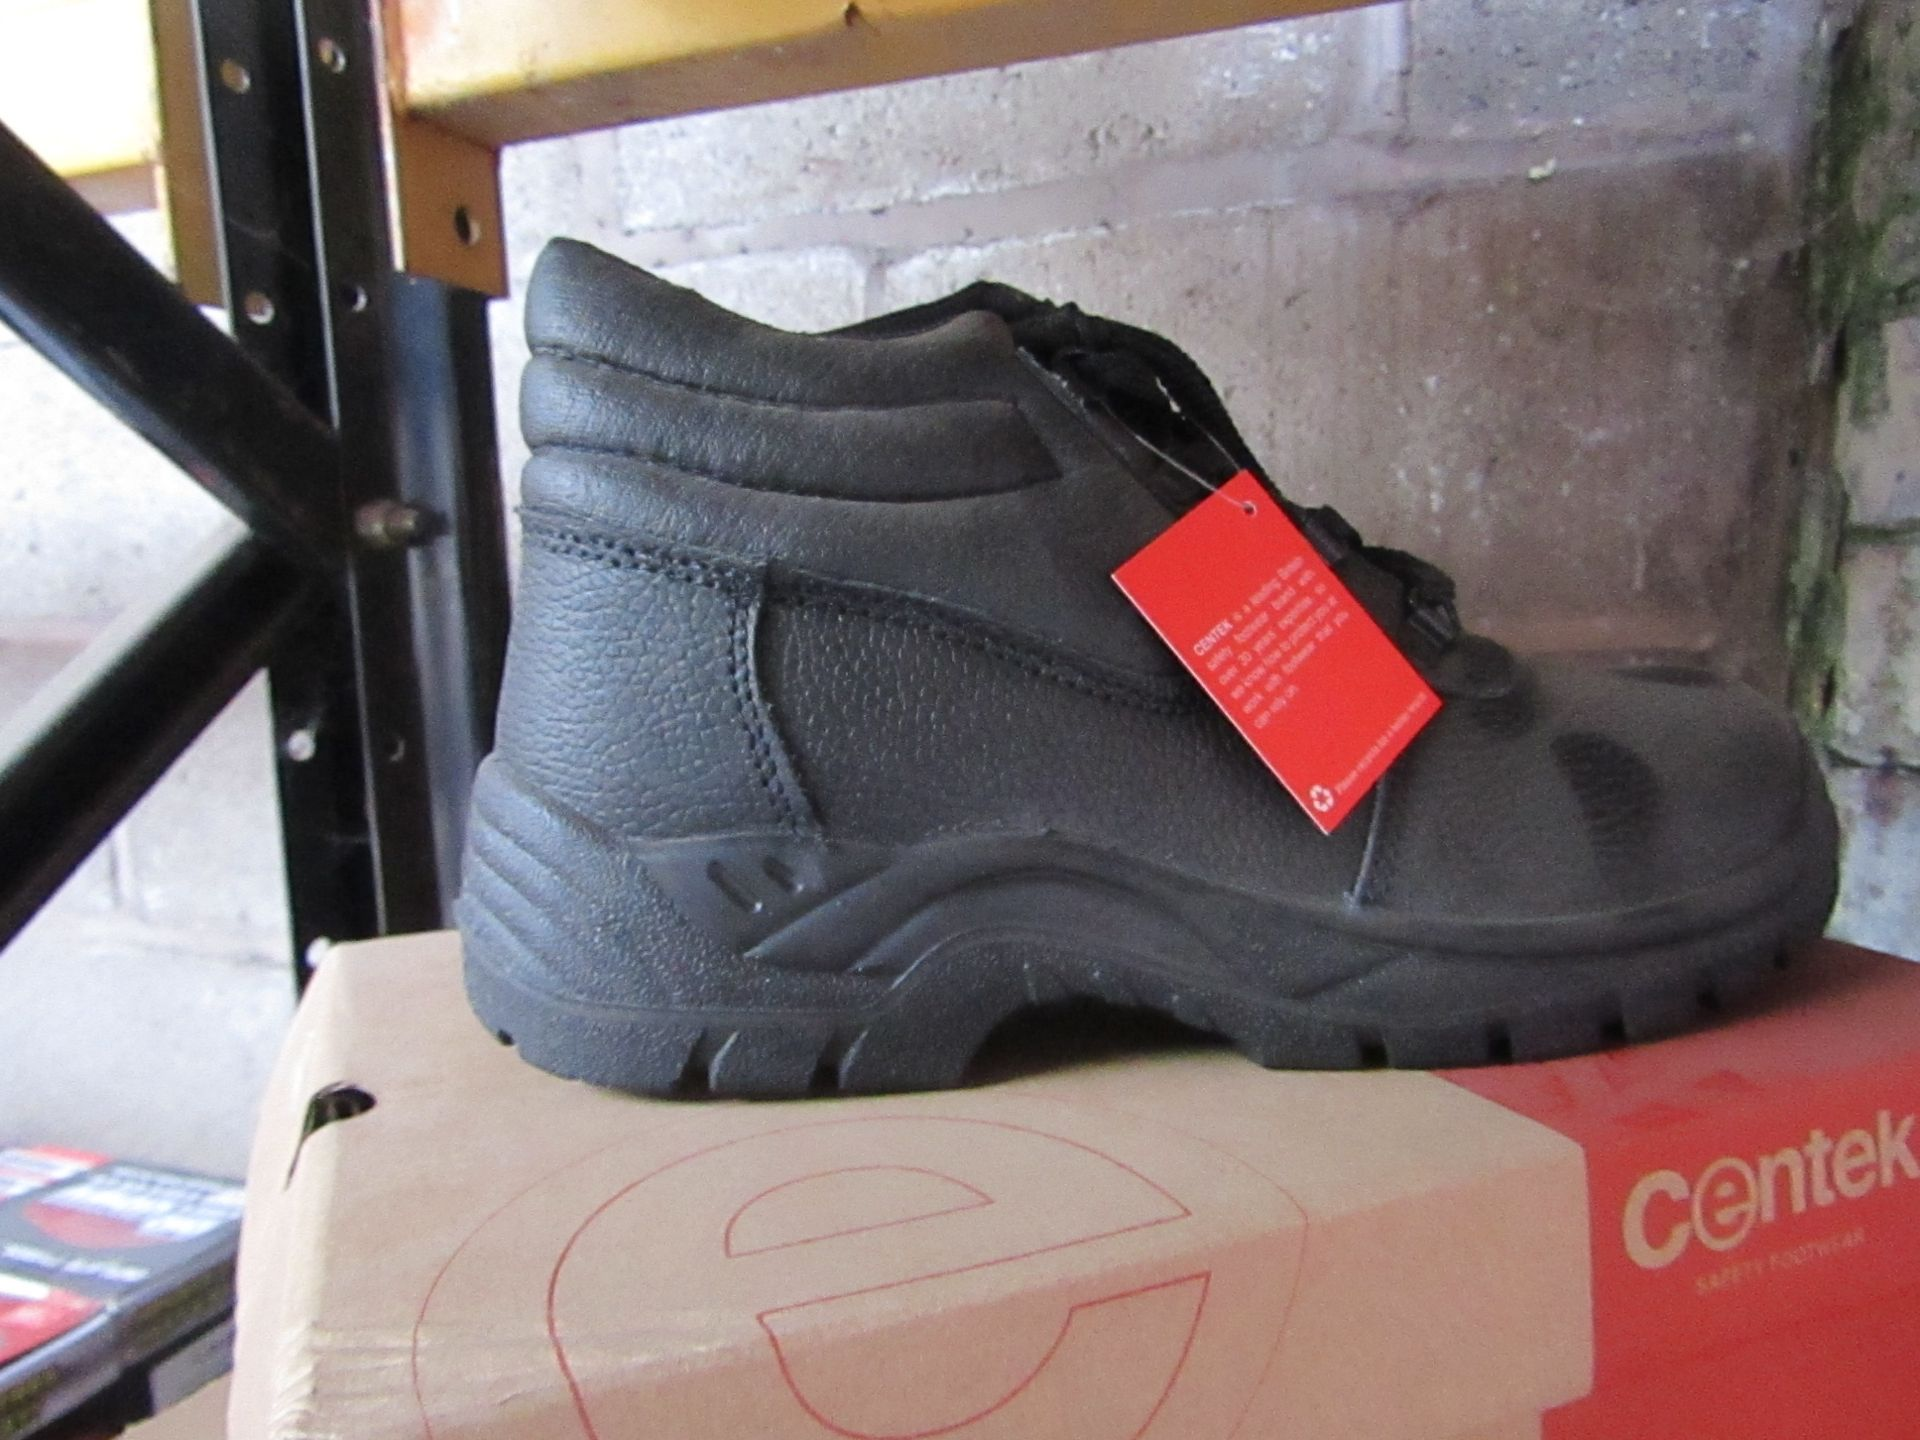 Lot 82 - Centek - Black Steel Toe Cap Boot - Size 9 - New & Boxed.